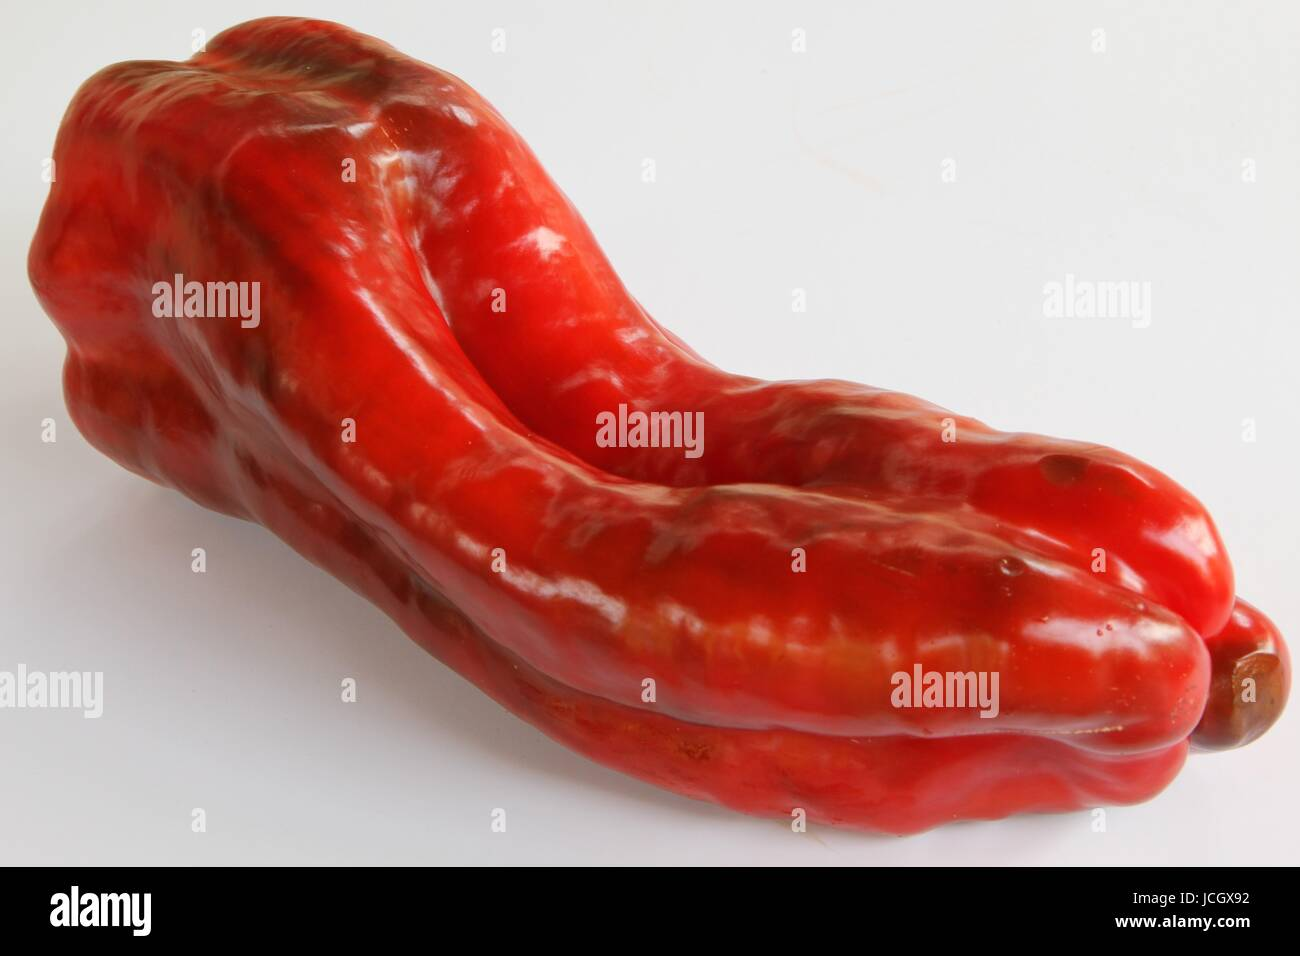 Red Pepper Close up on White background - Stock Image